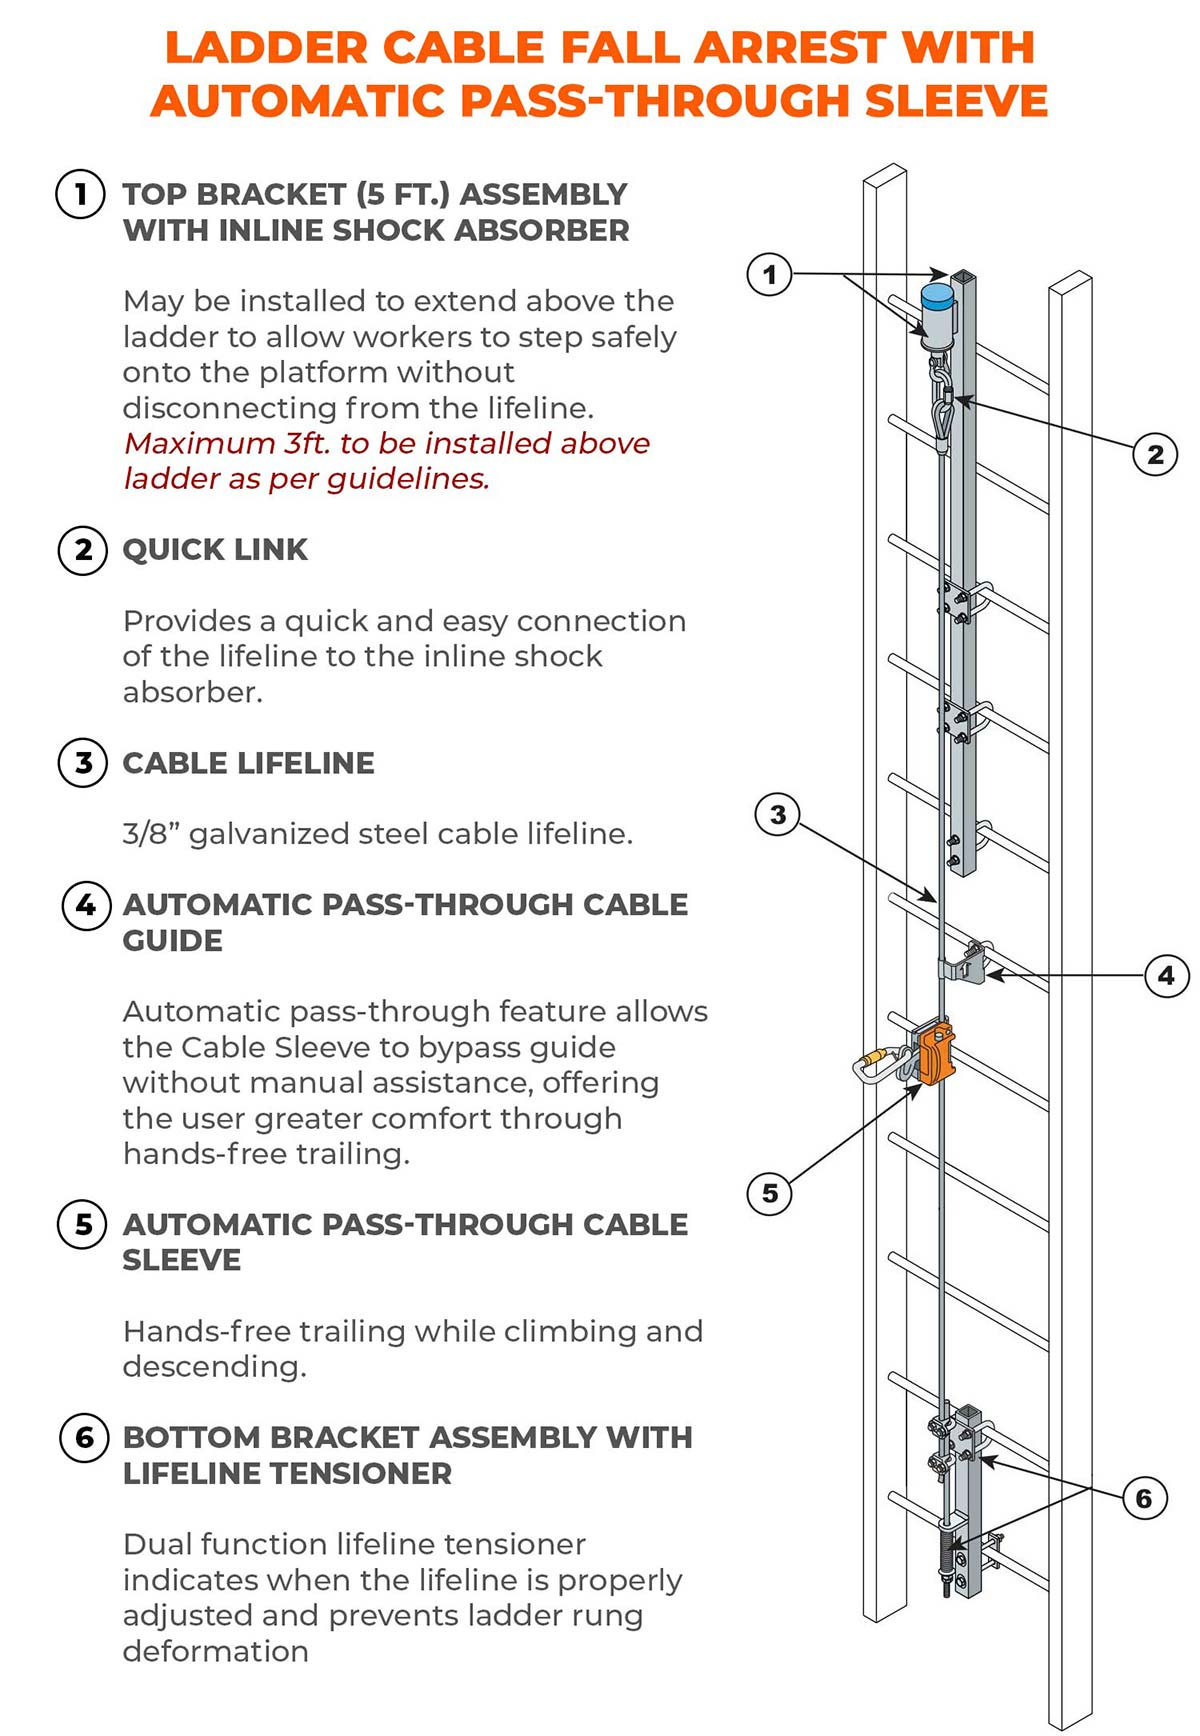 Ladder Cable Fall Arrest w/ Automatic Pass-Through Sleeve - Components